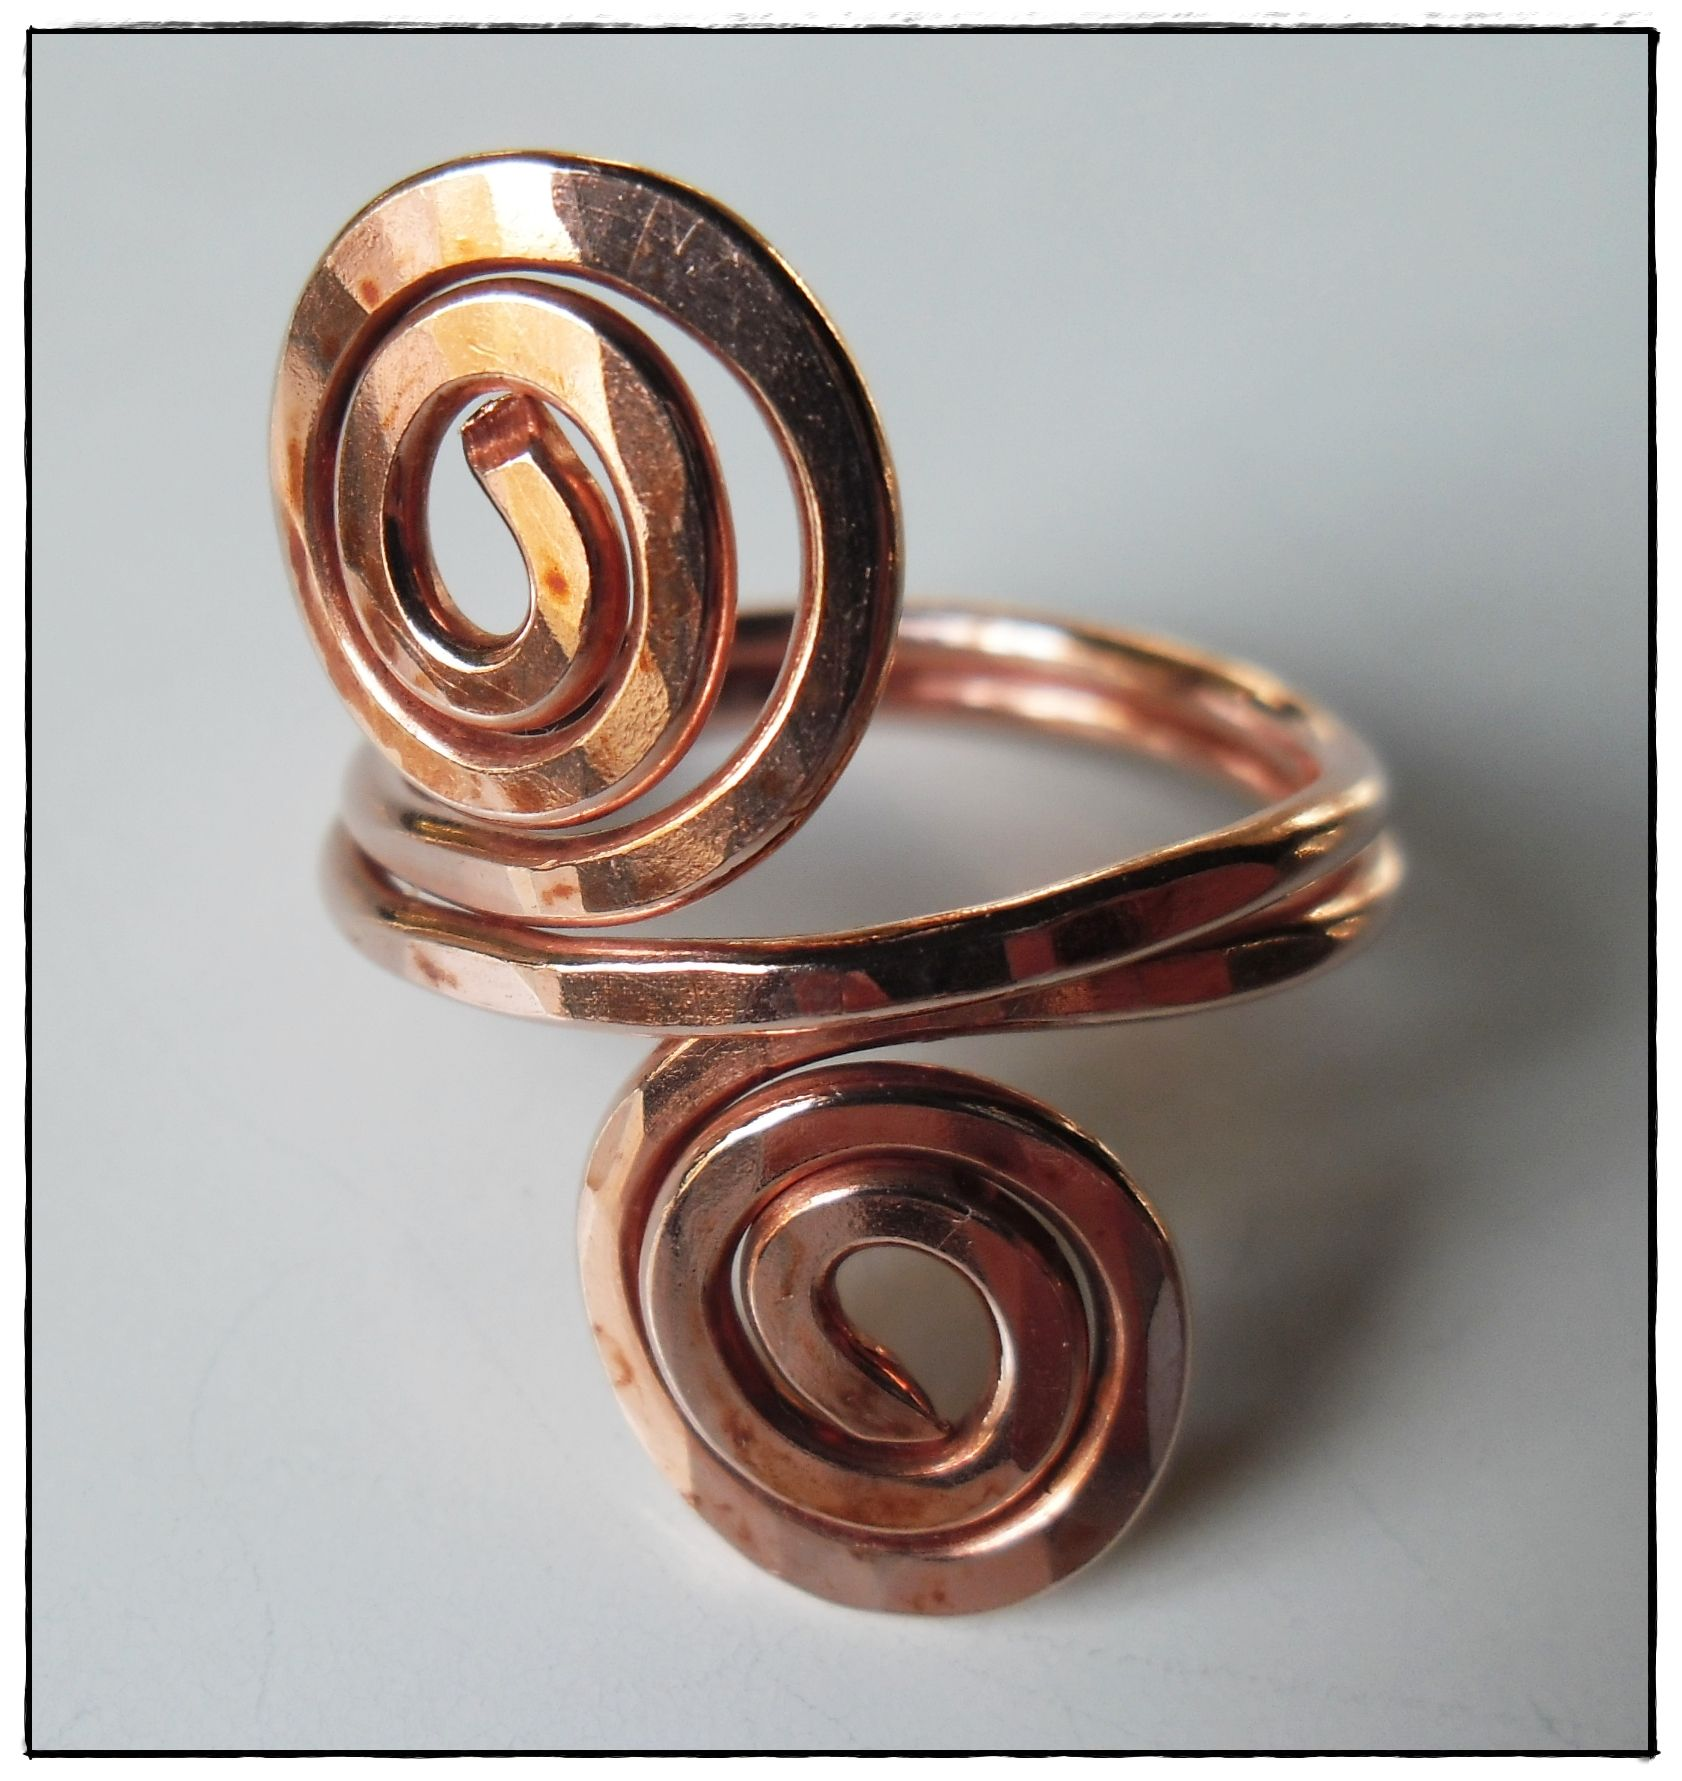 copper wire ring - Buscar con Google | Anillos | Pinterest | Copper wire